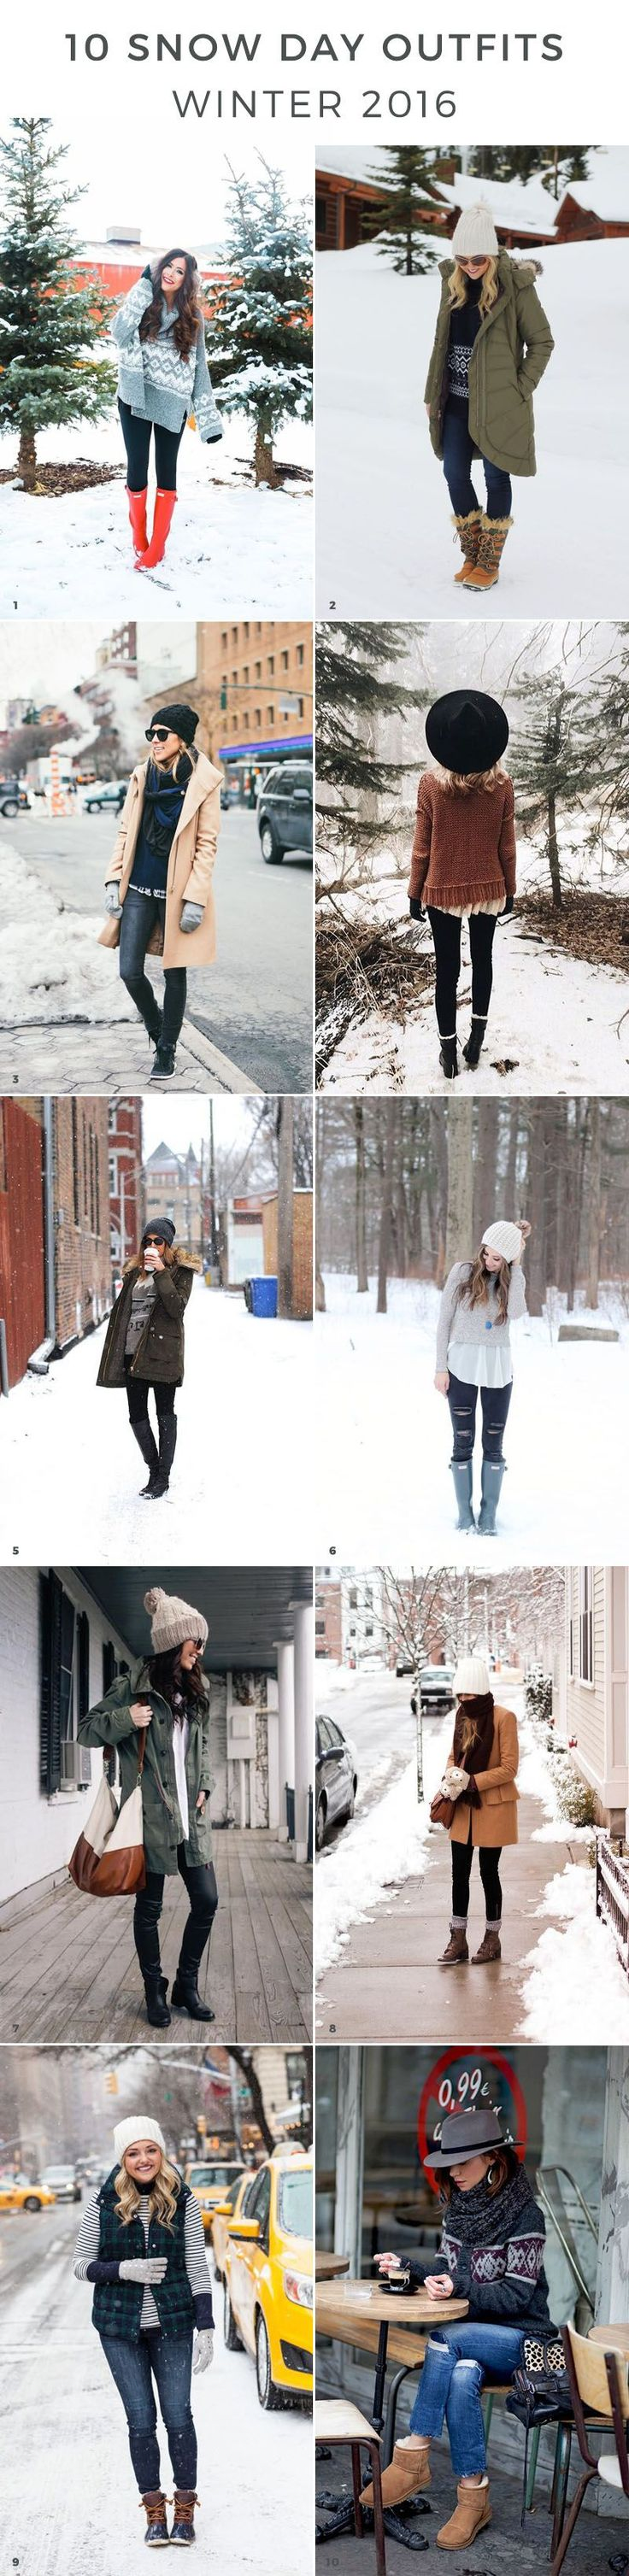 Snow Day Outfits That Will Actually Keep You Warm Cold - 10 great winter vacation ideas